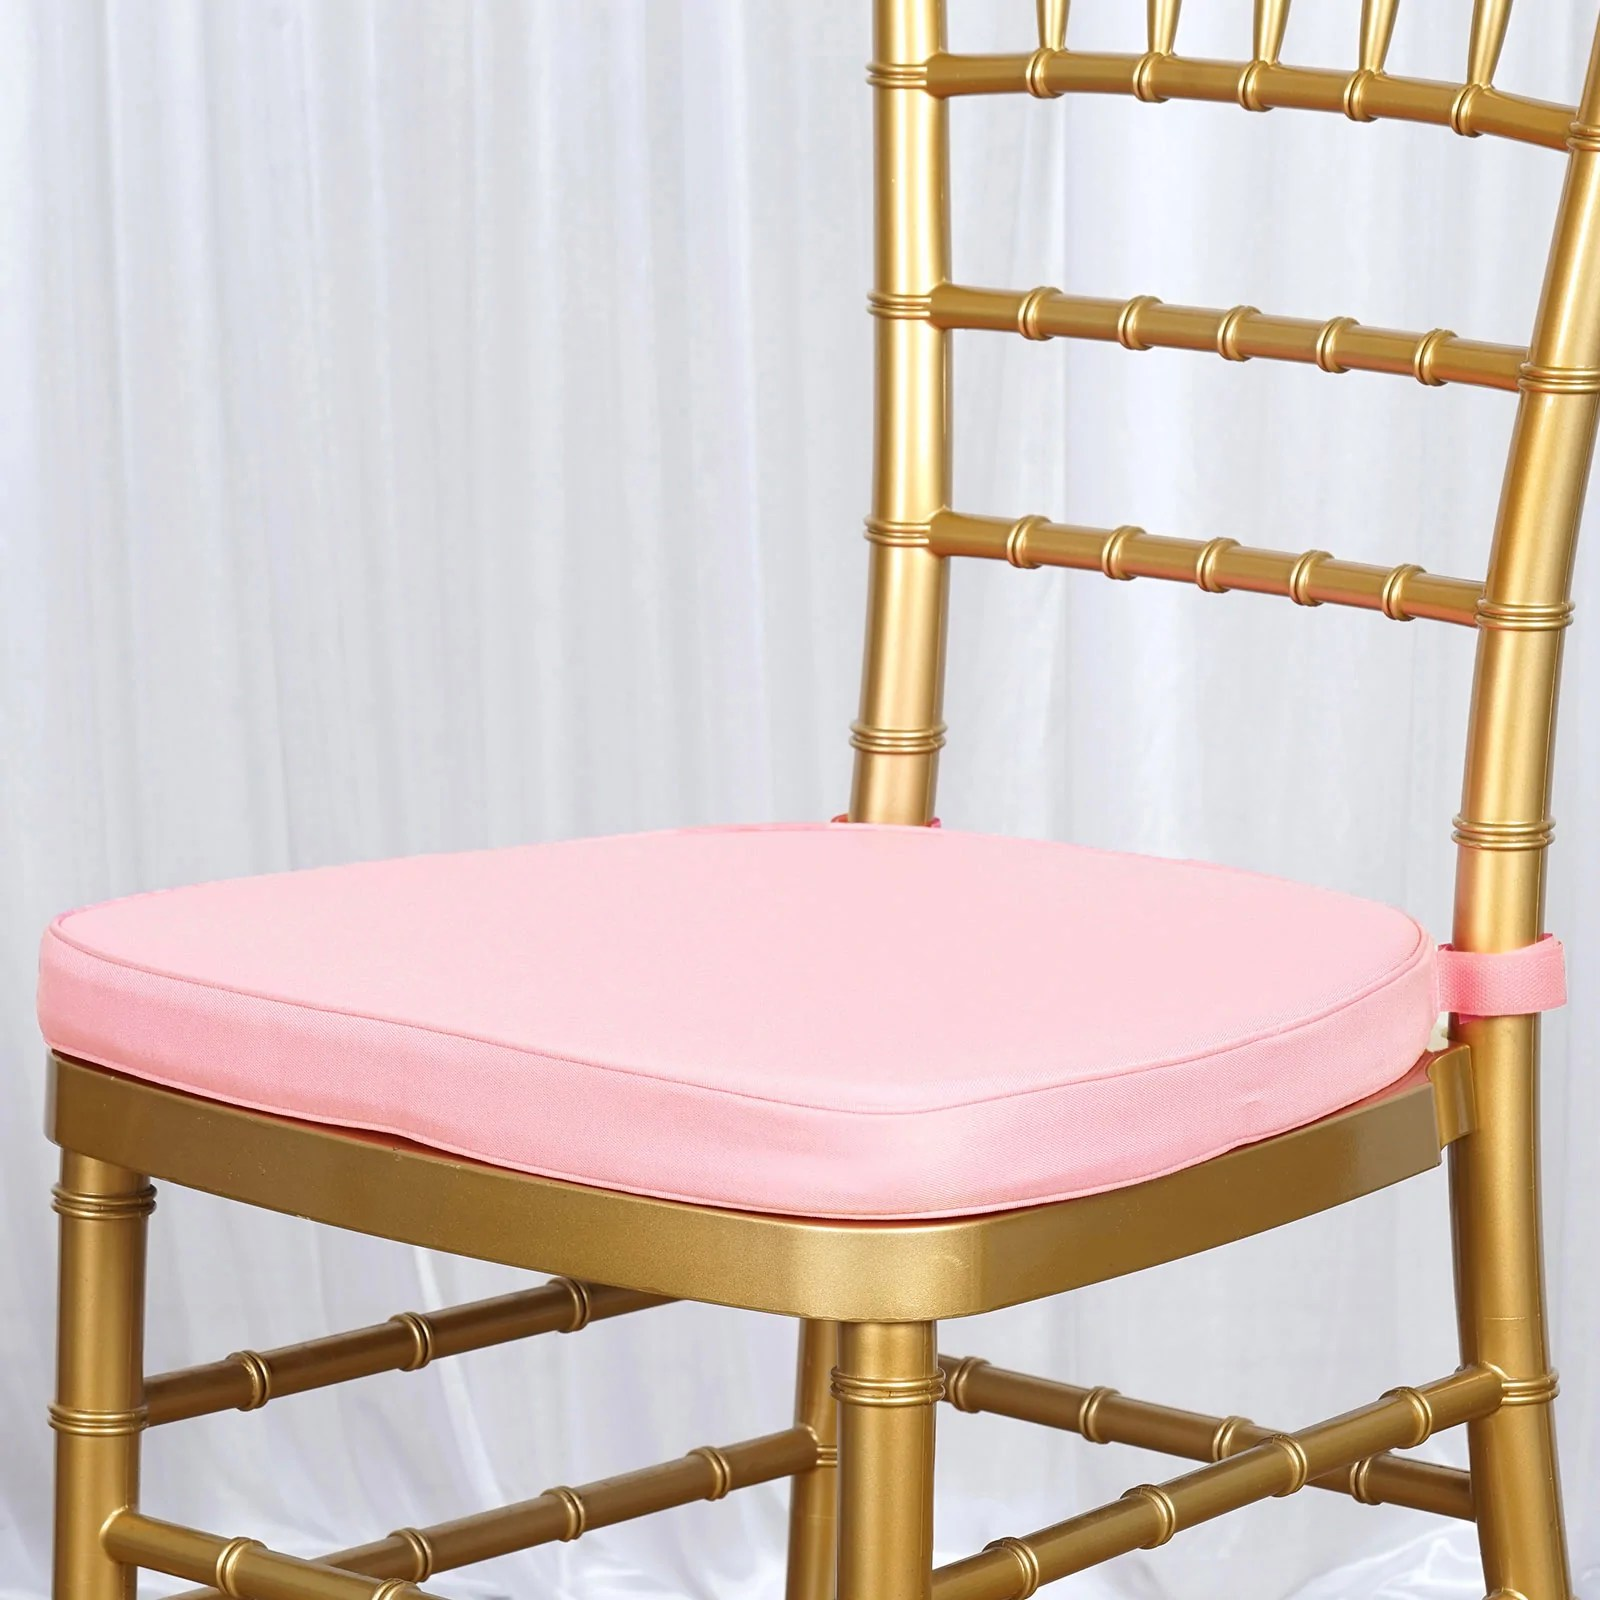 wholesale chiavari chairs for sale safety 1st potty chair 2 quot thick cushion beechwood rose gold